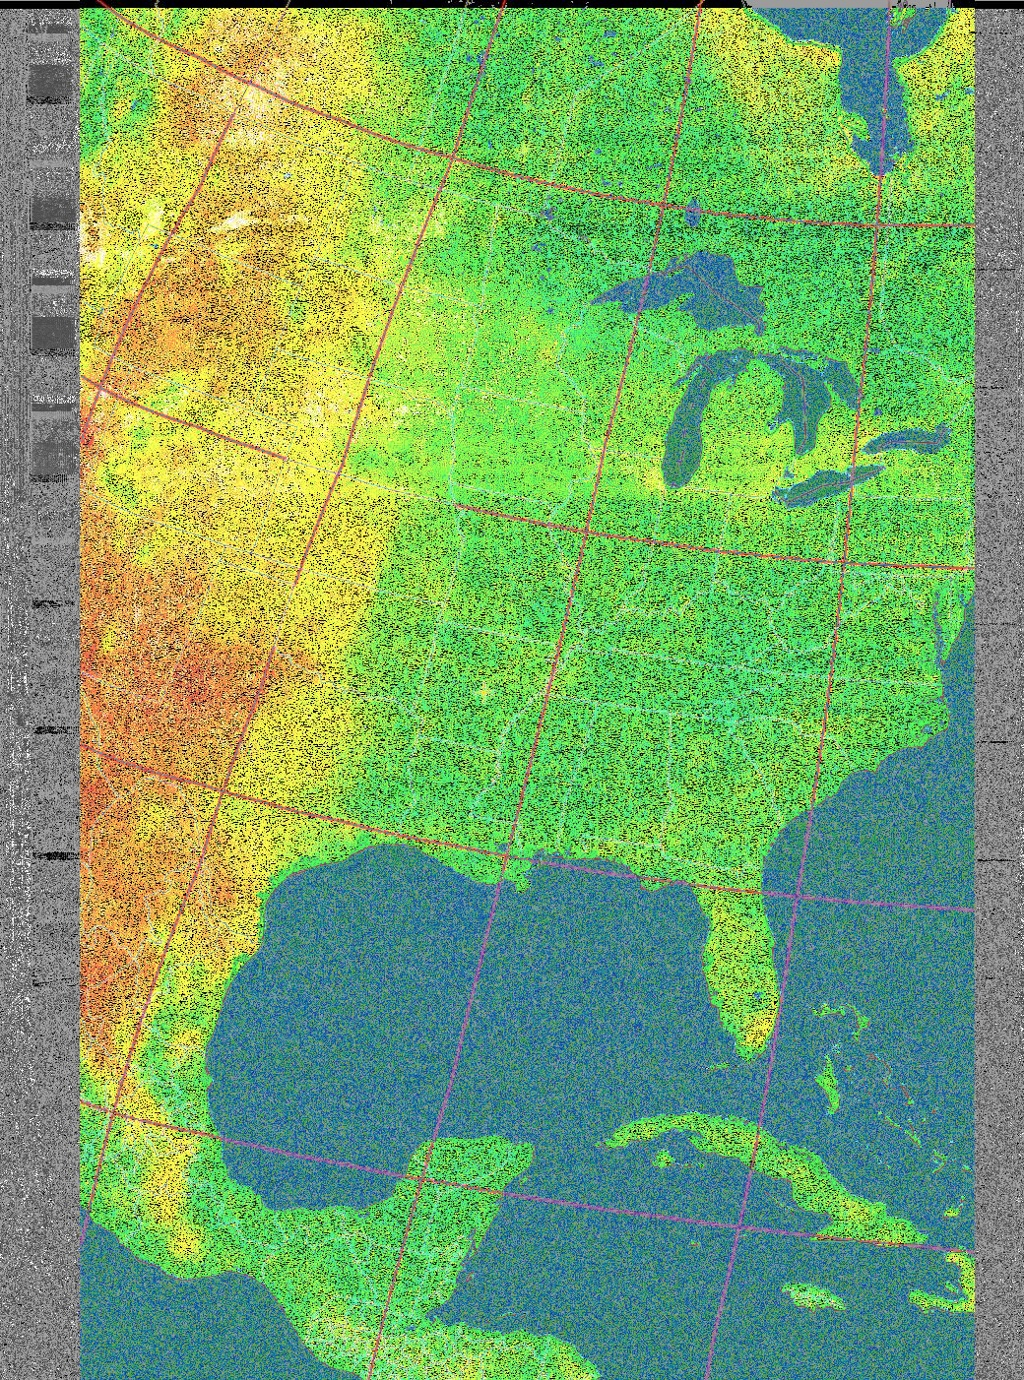 noaa-19-03061908-mcir